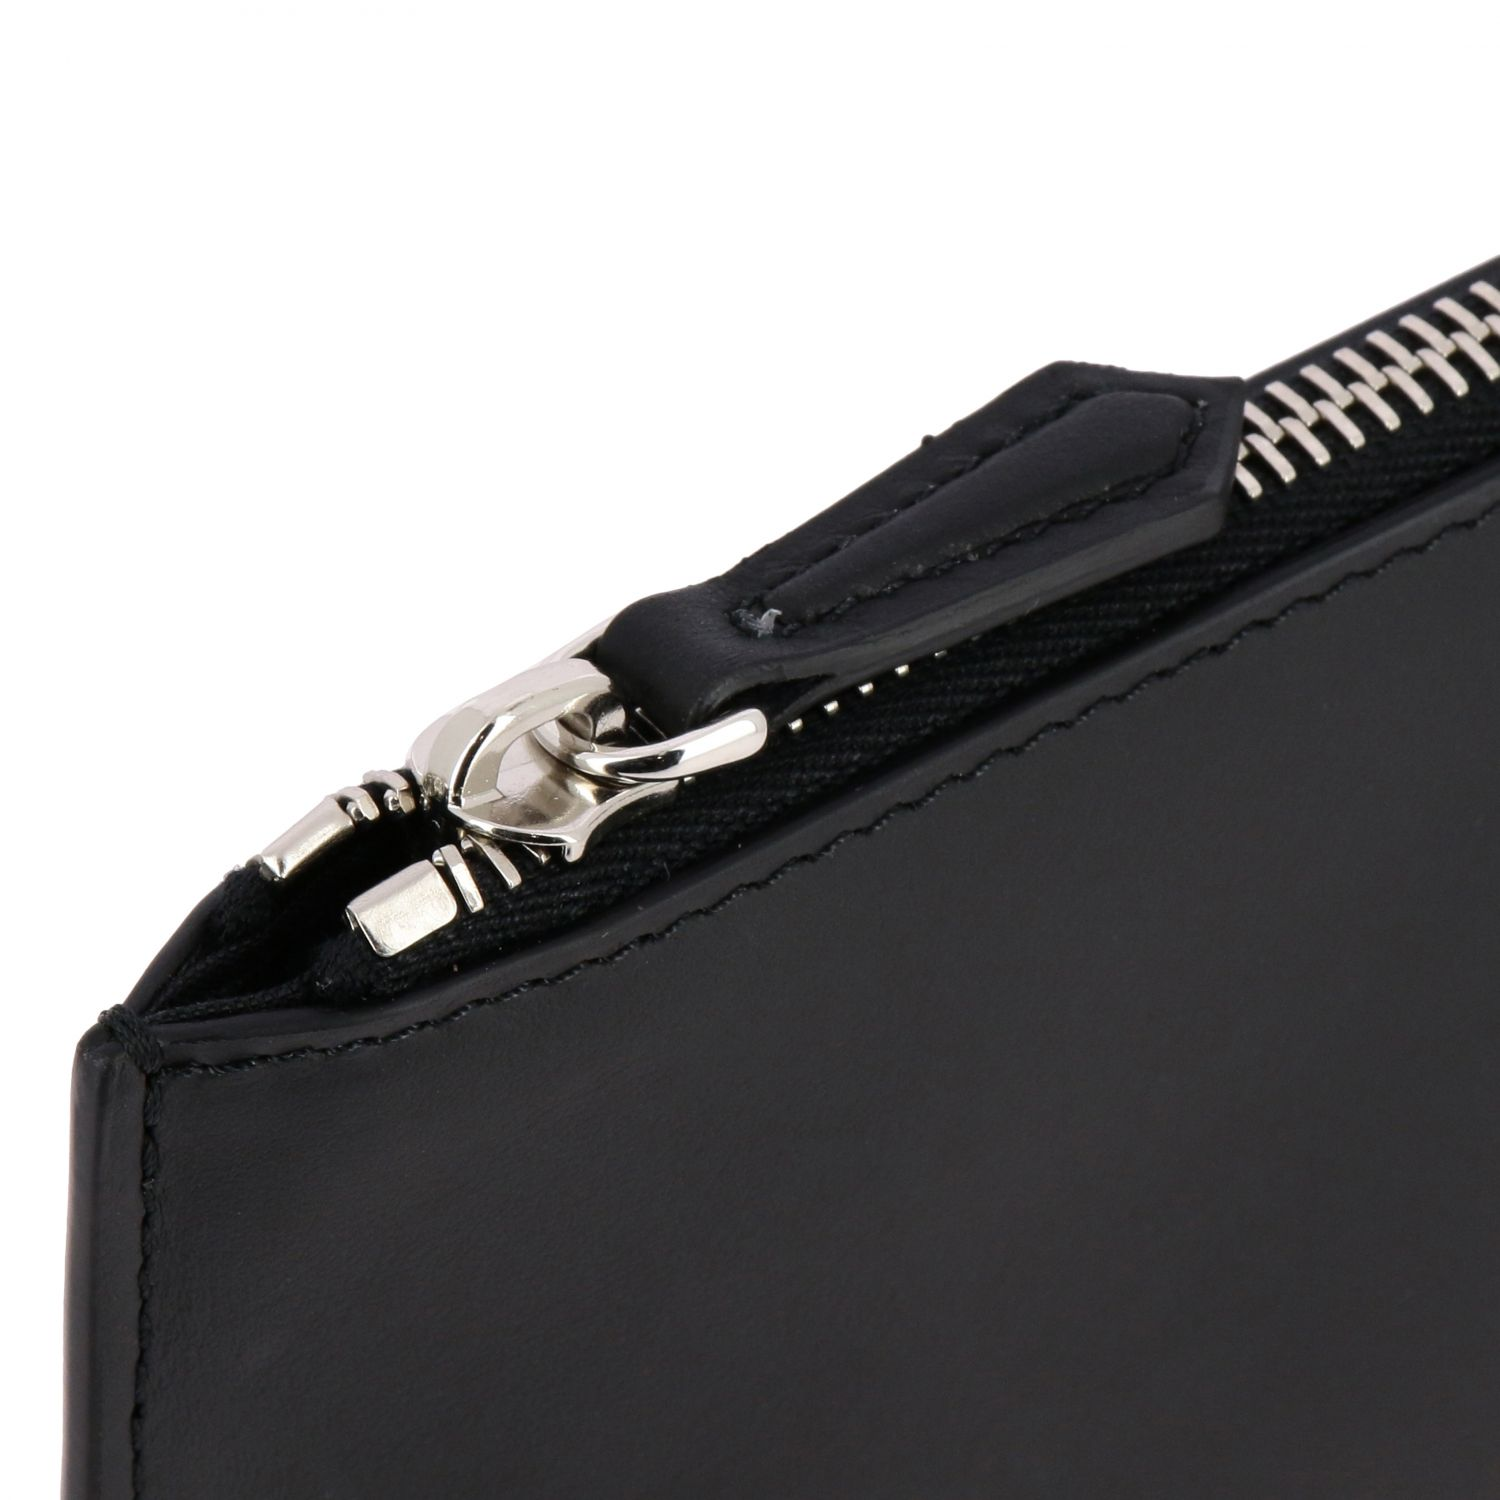 Porte-document Fendi: Sac homme Fendi noir 4